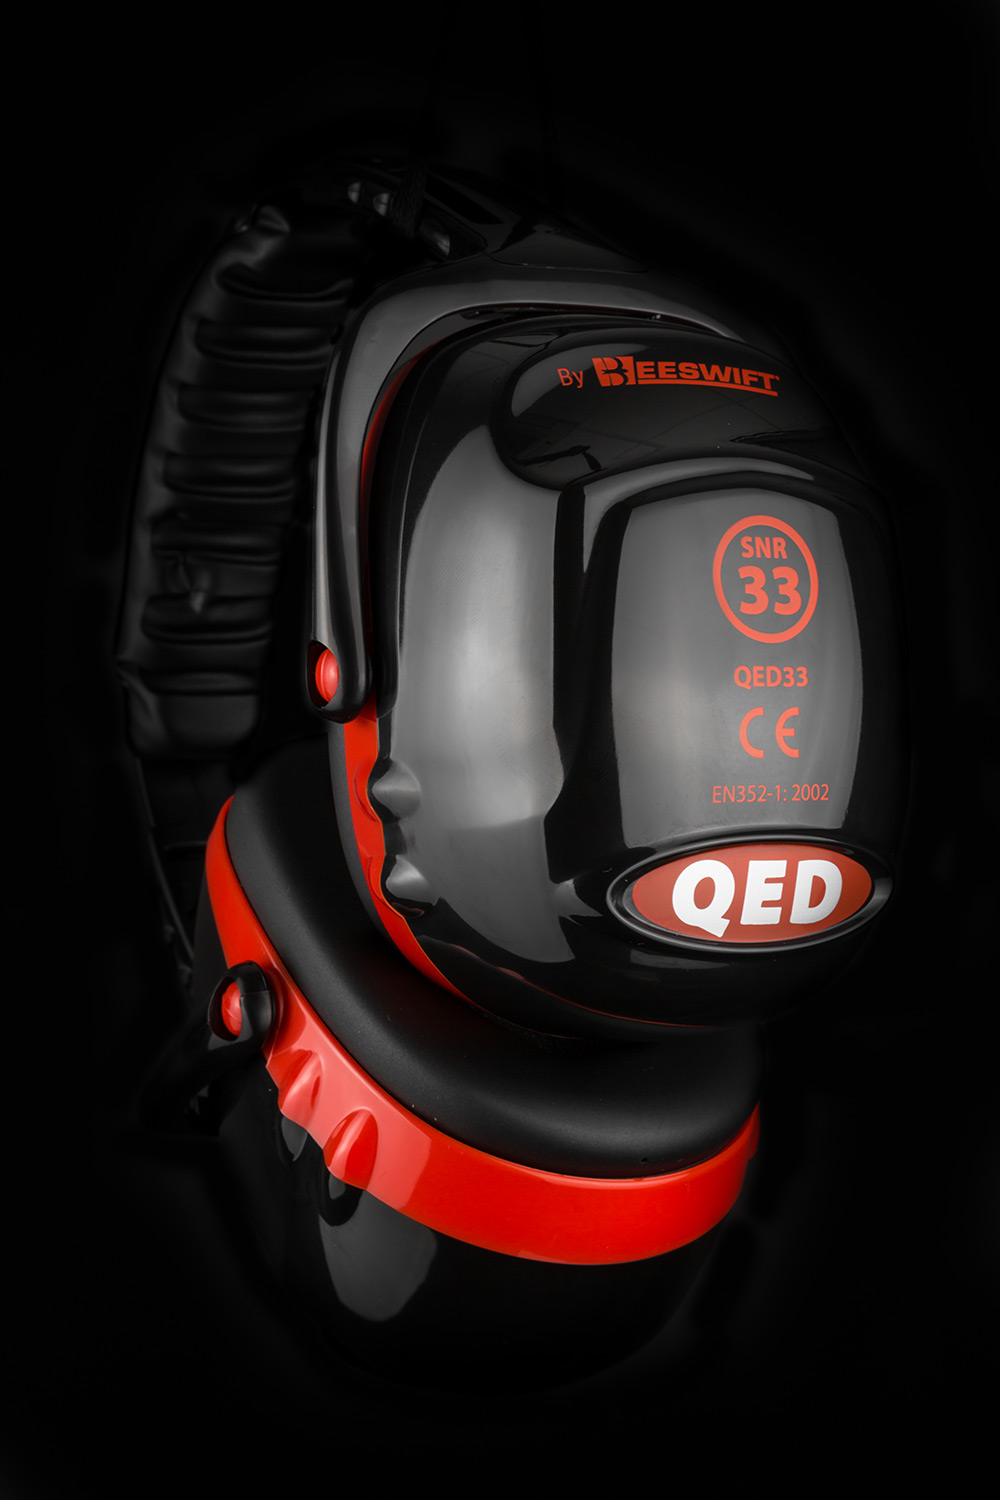 QED33 EAR DEFENDER  - QED33